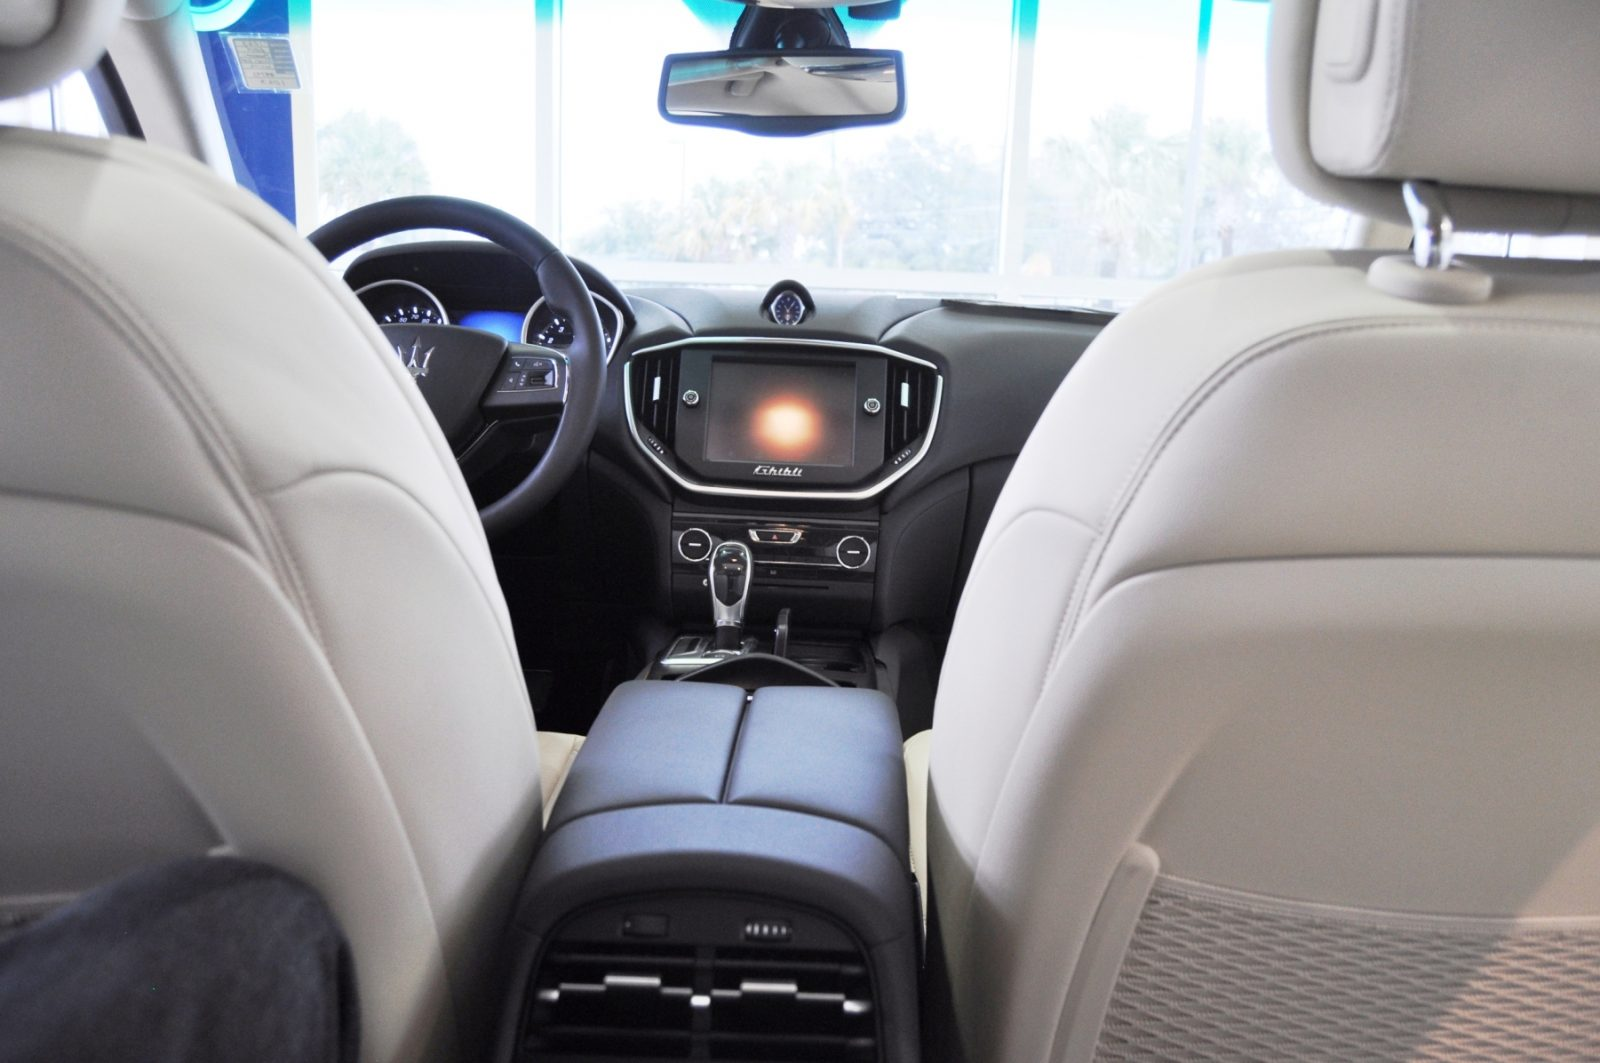 2014 Maserati Ghibli Q4 -- Interior Feels Luxe and High-Quality, But Back Seat A Bit Tight 6